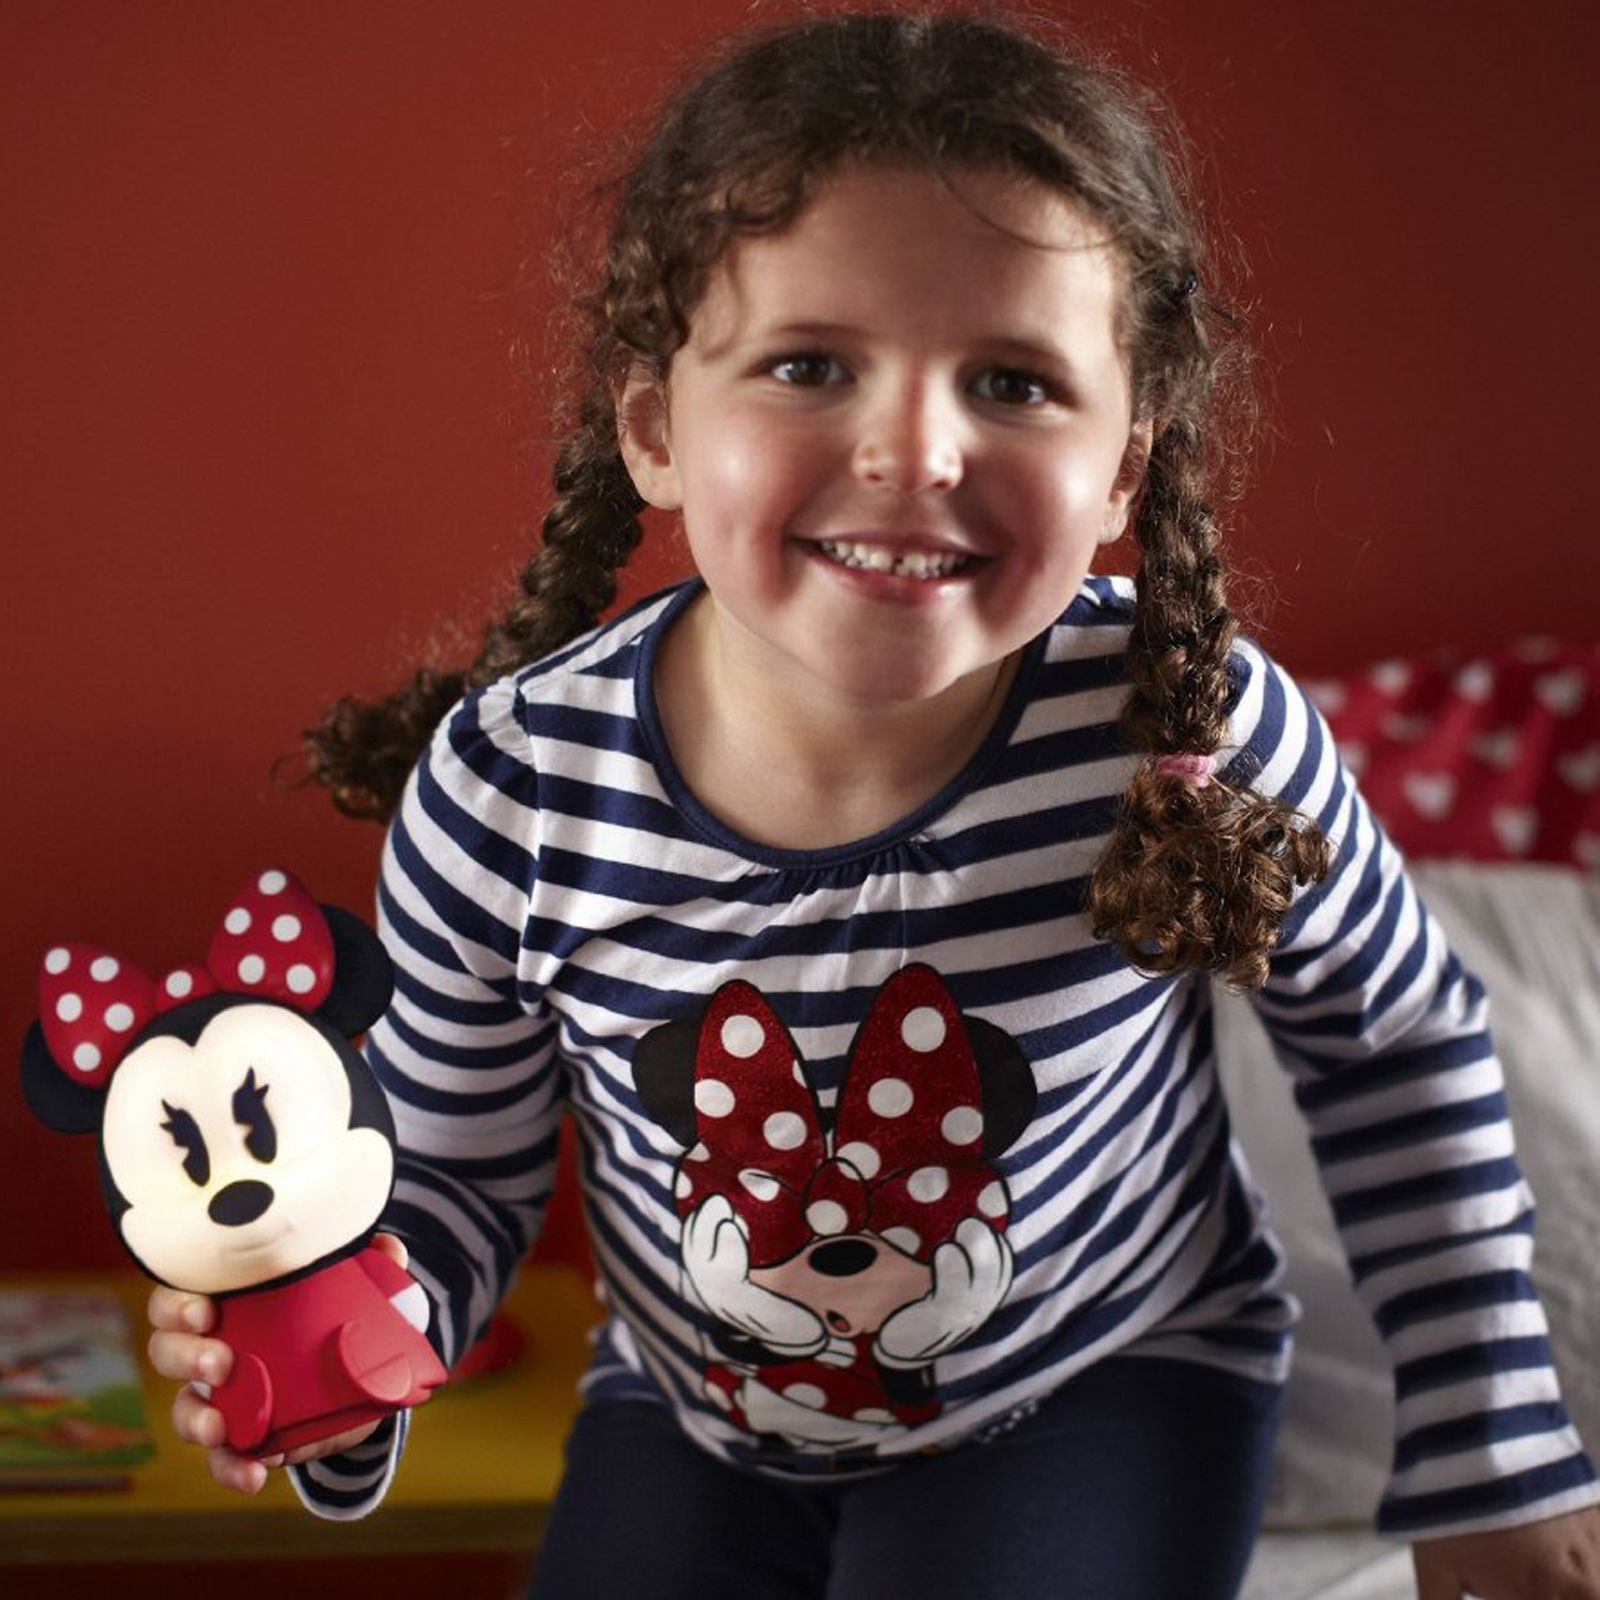 Baby Bettwäsche Minnie Mouse Led Lampe Minnie Mouse Softpal Licht Lampe Neu Philips